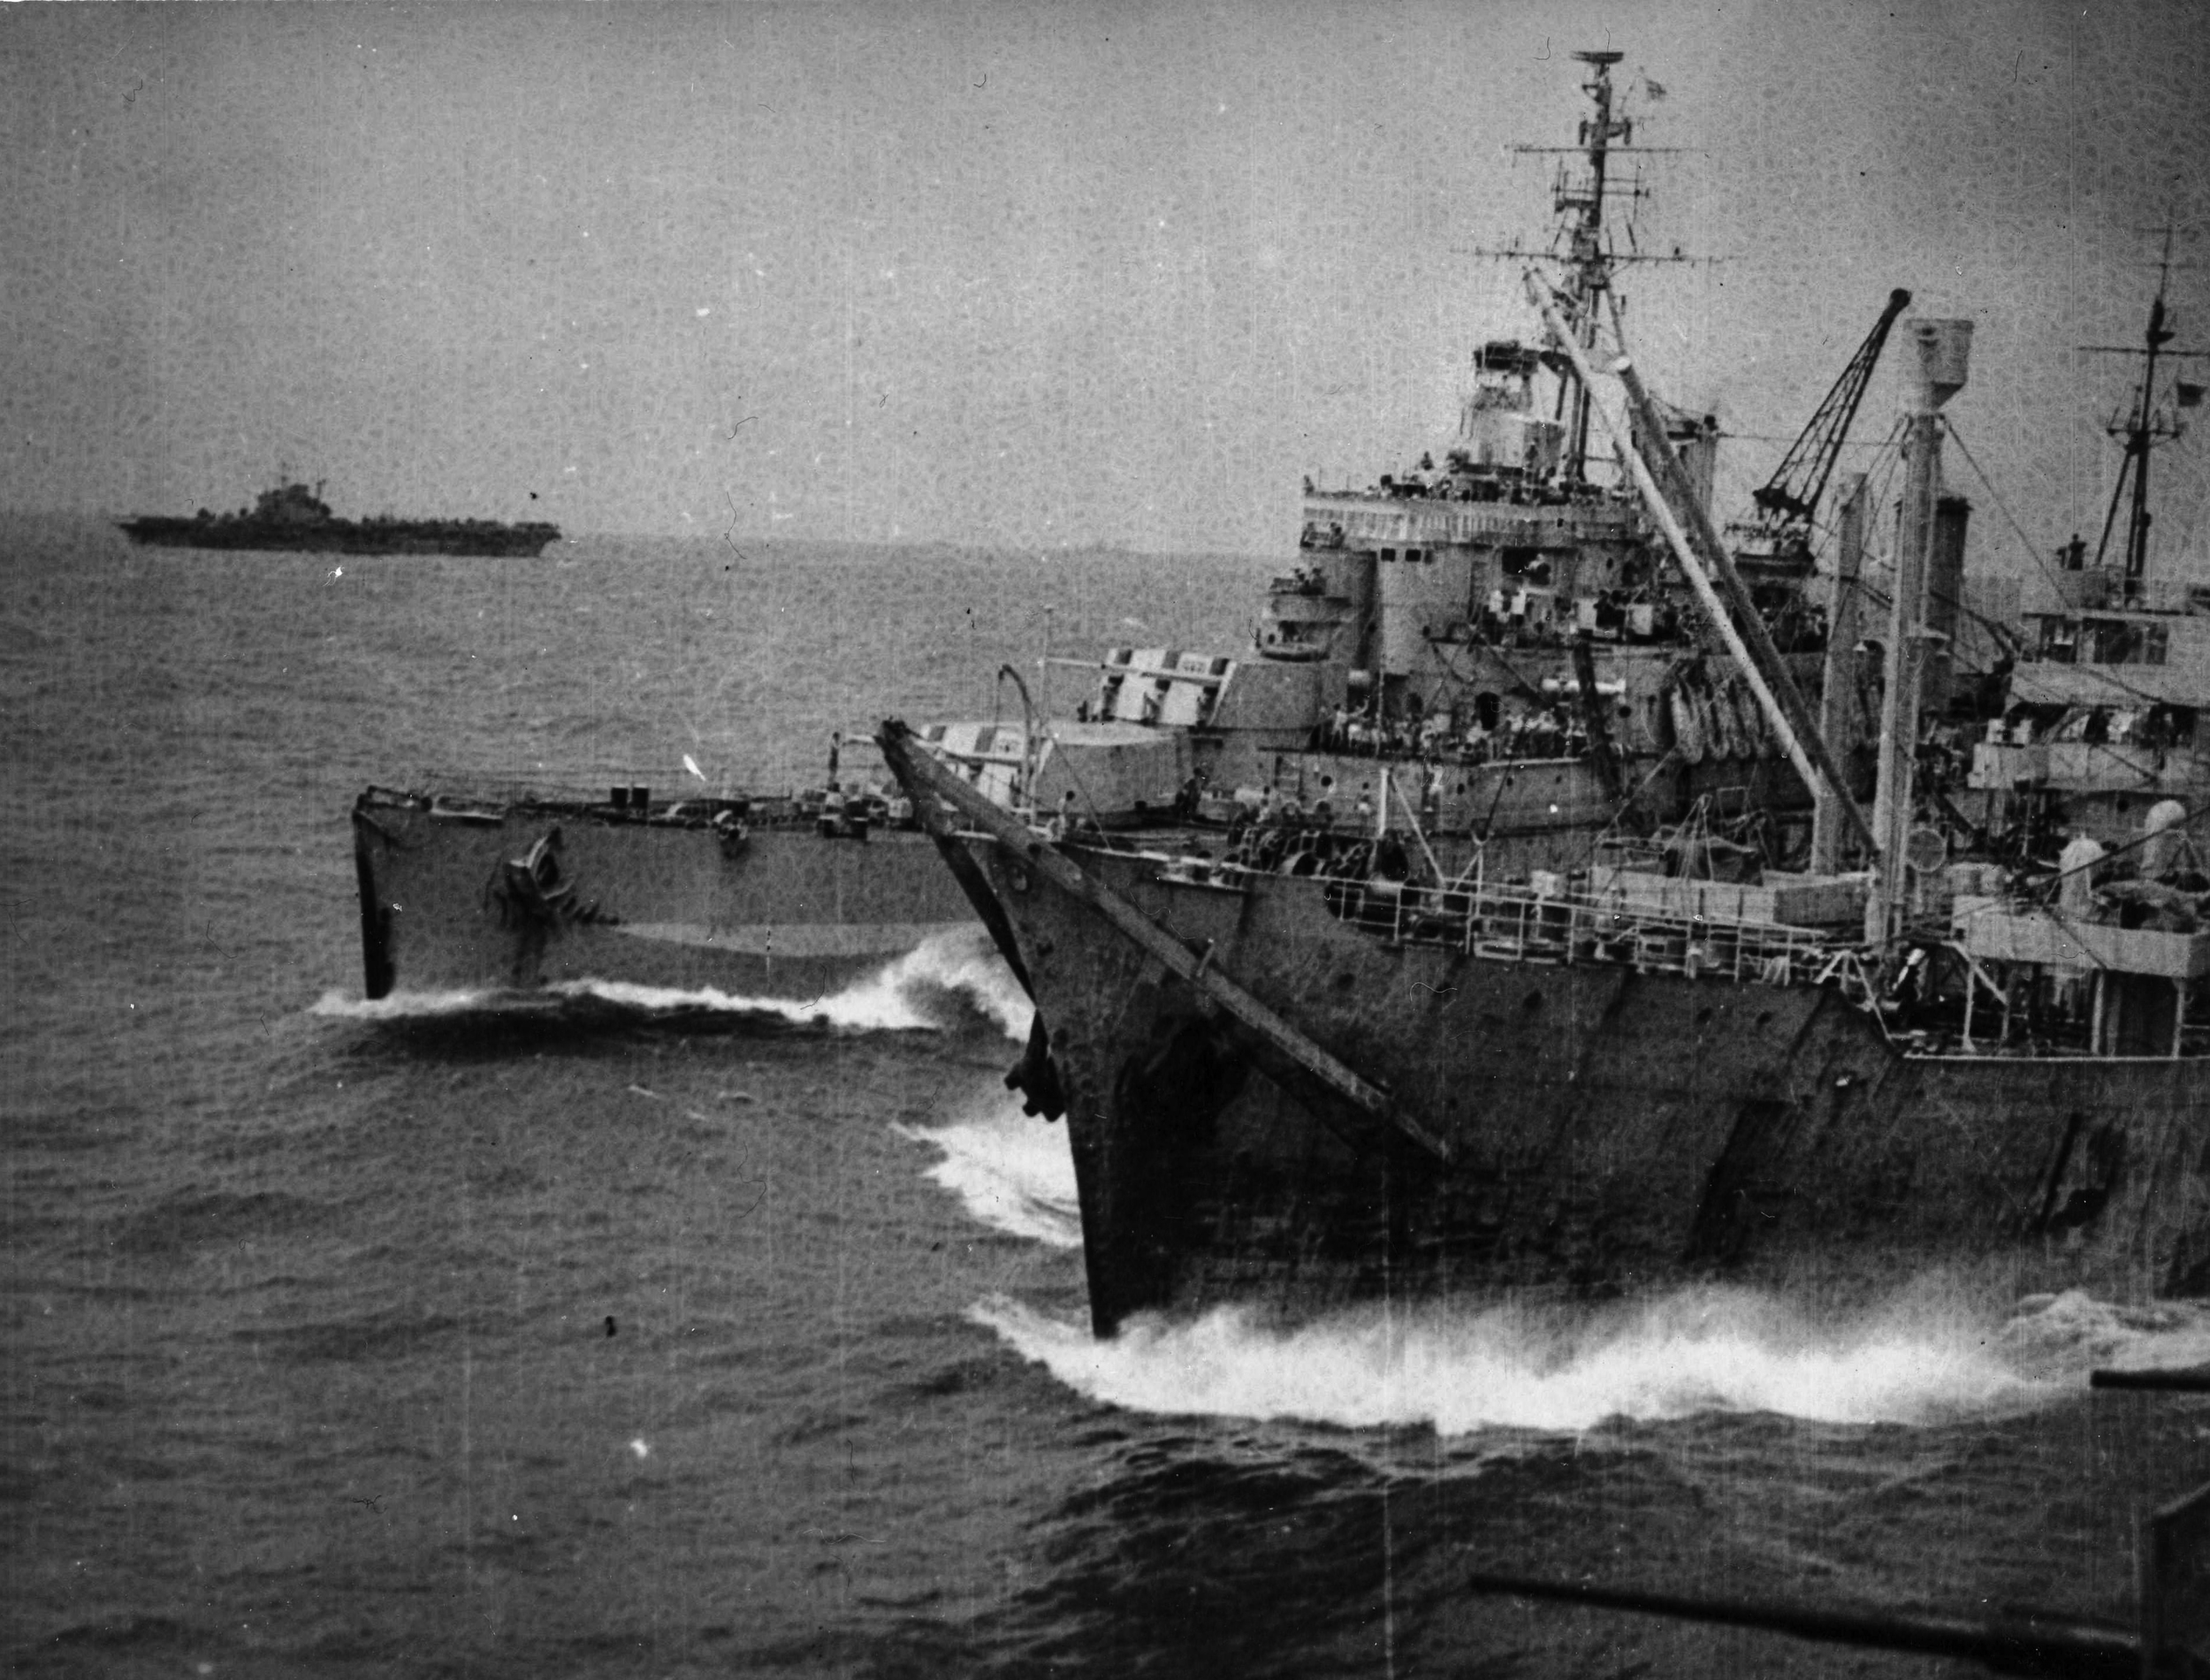 The oiler OLNA refuels HMS NEWFOUNDLAND with IMPLACABLE in the background.